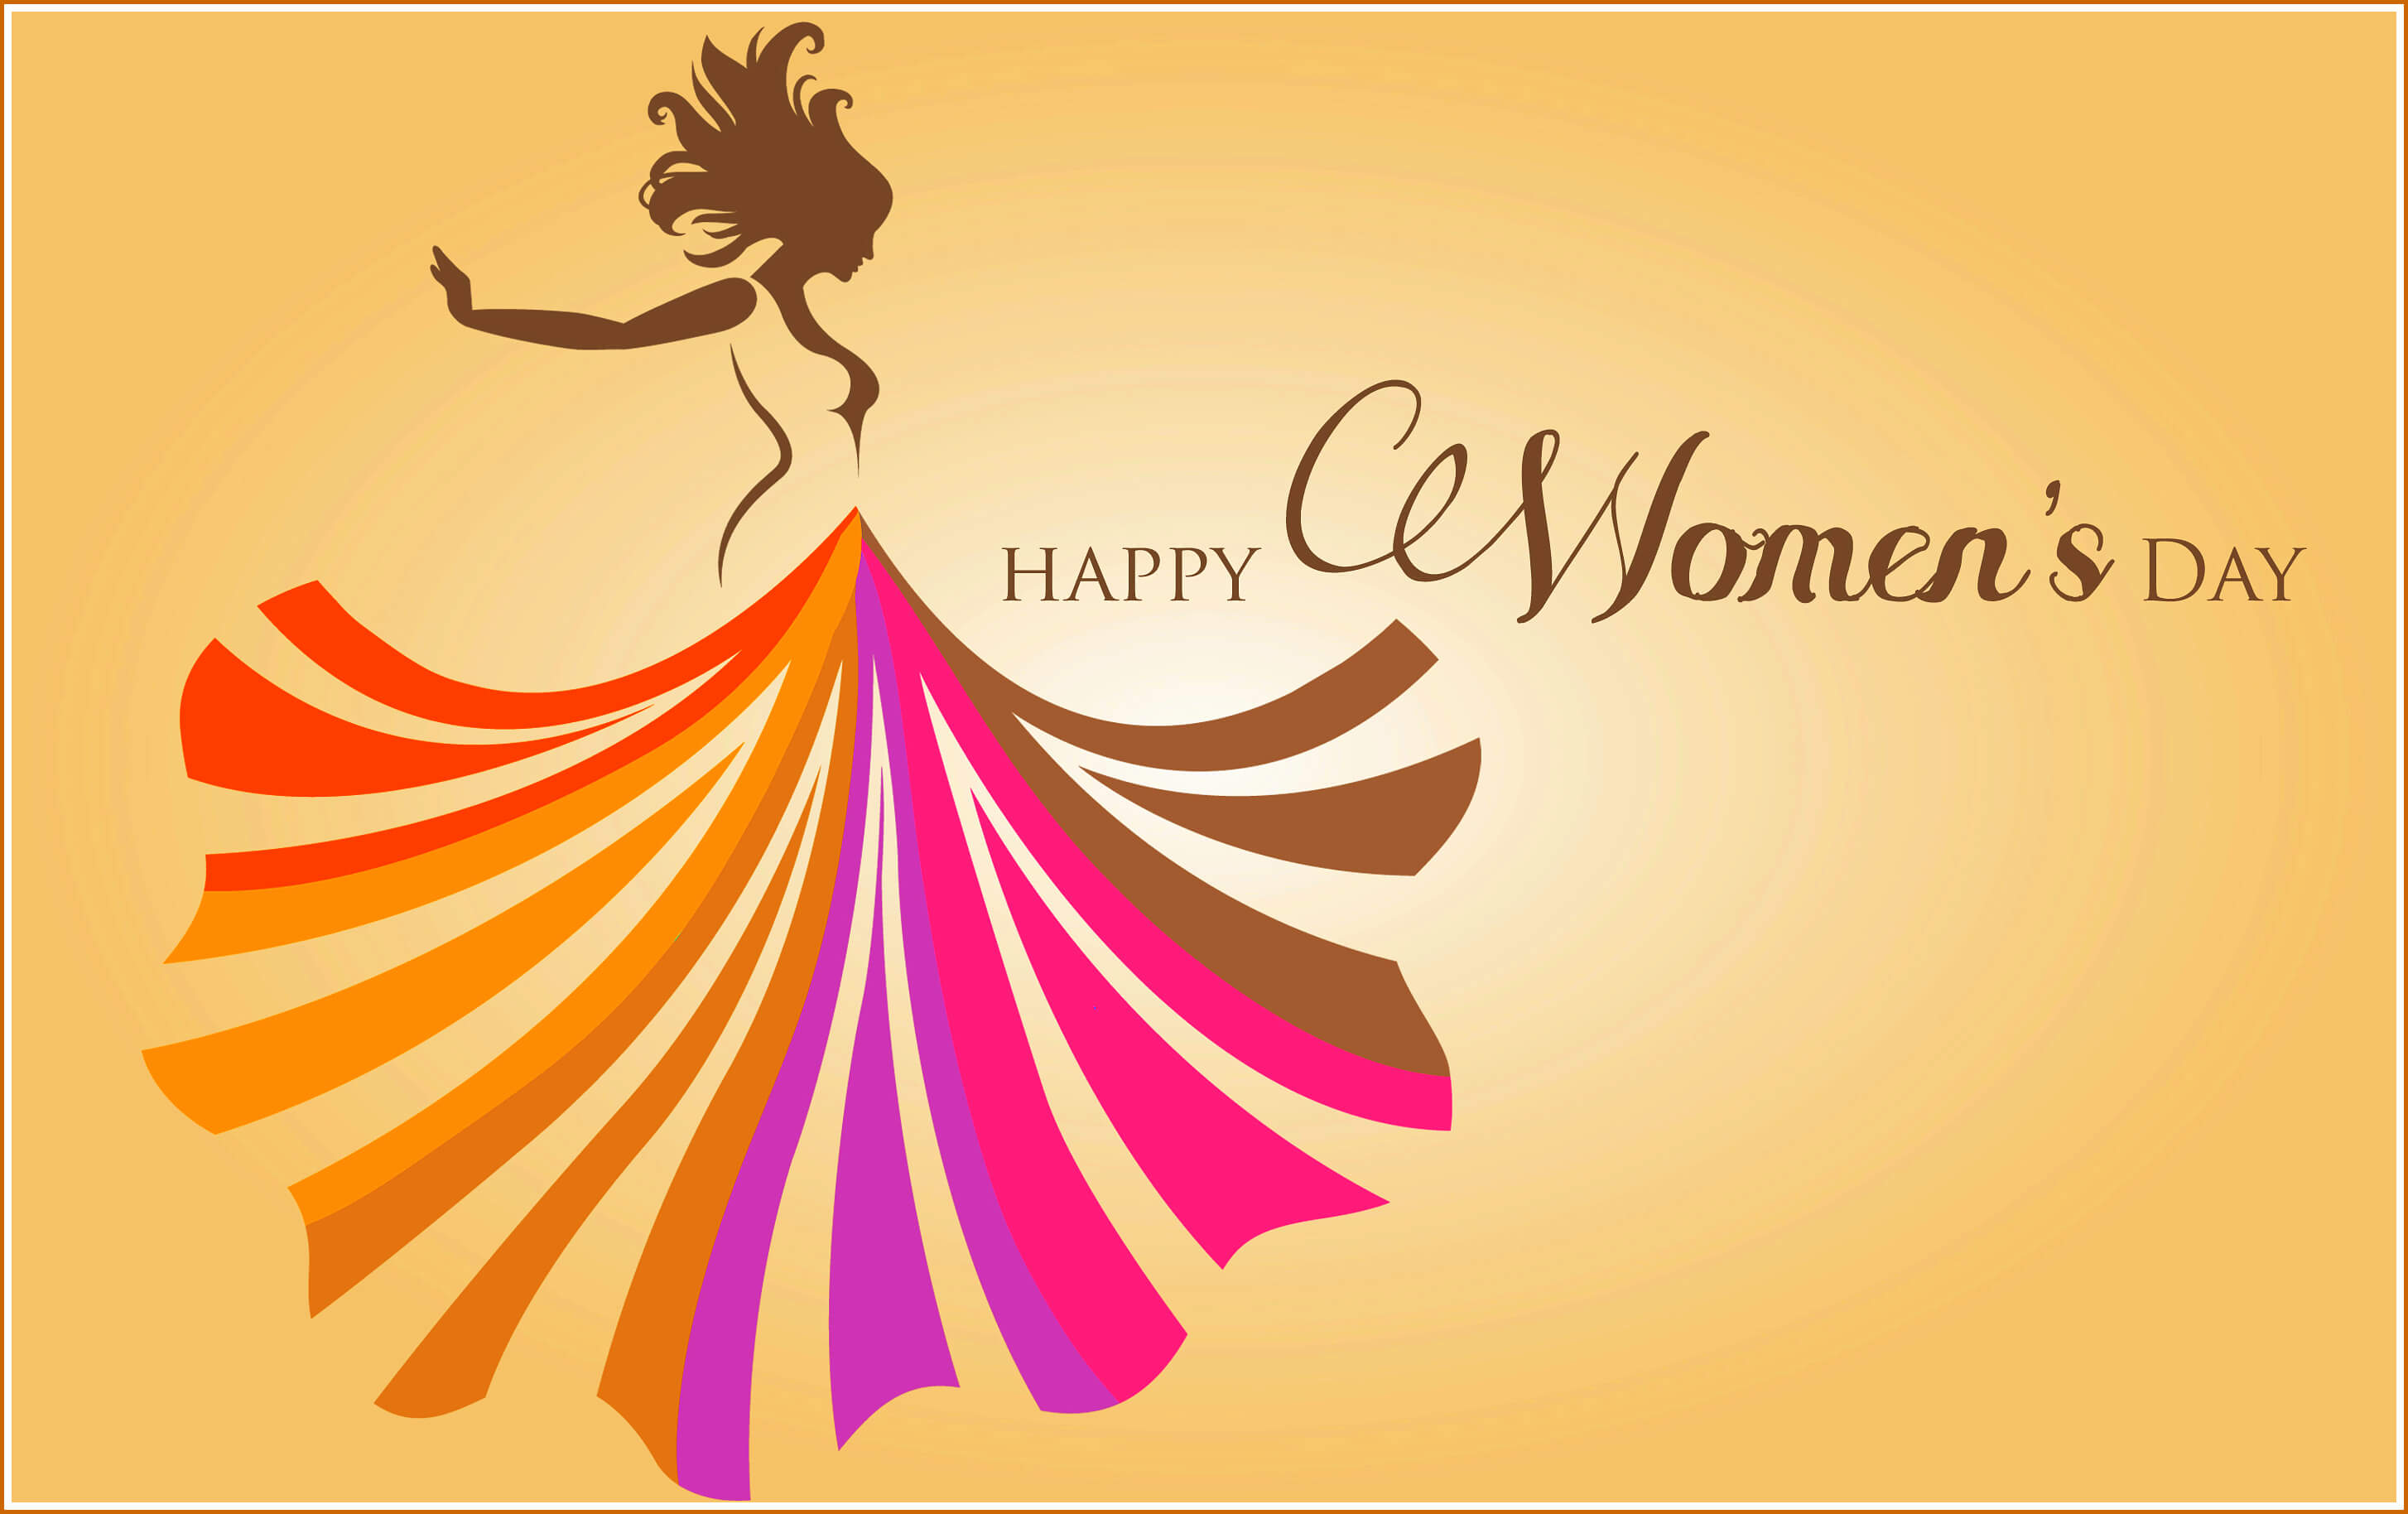 happy international womens day 8 march wishes hd wallpaper